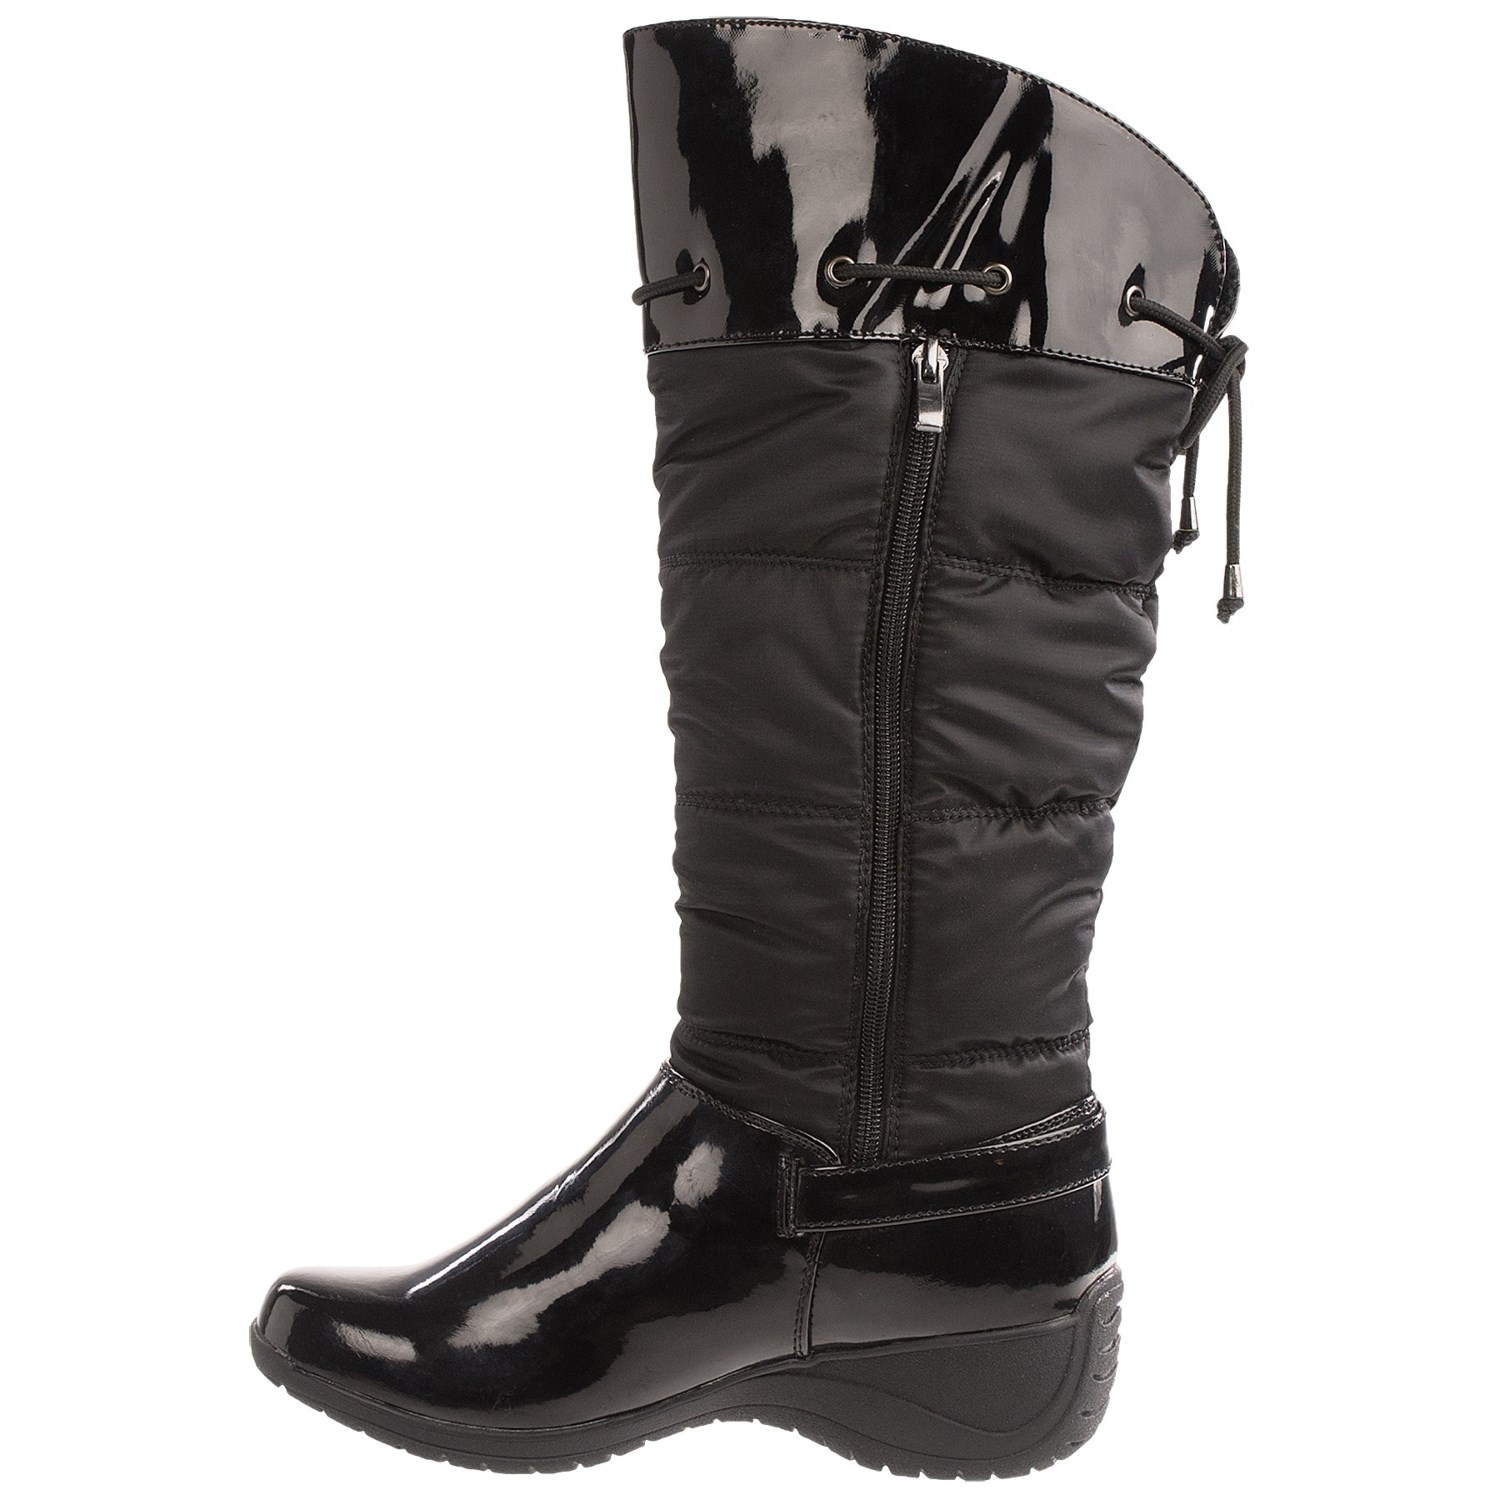 Aquatherm By Santana Canada Colleen Boots For Women